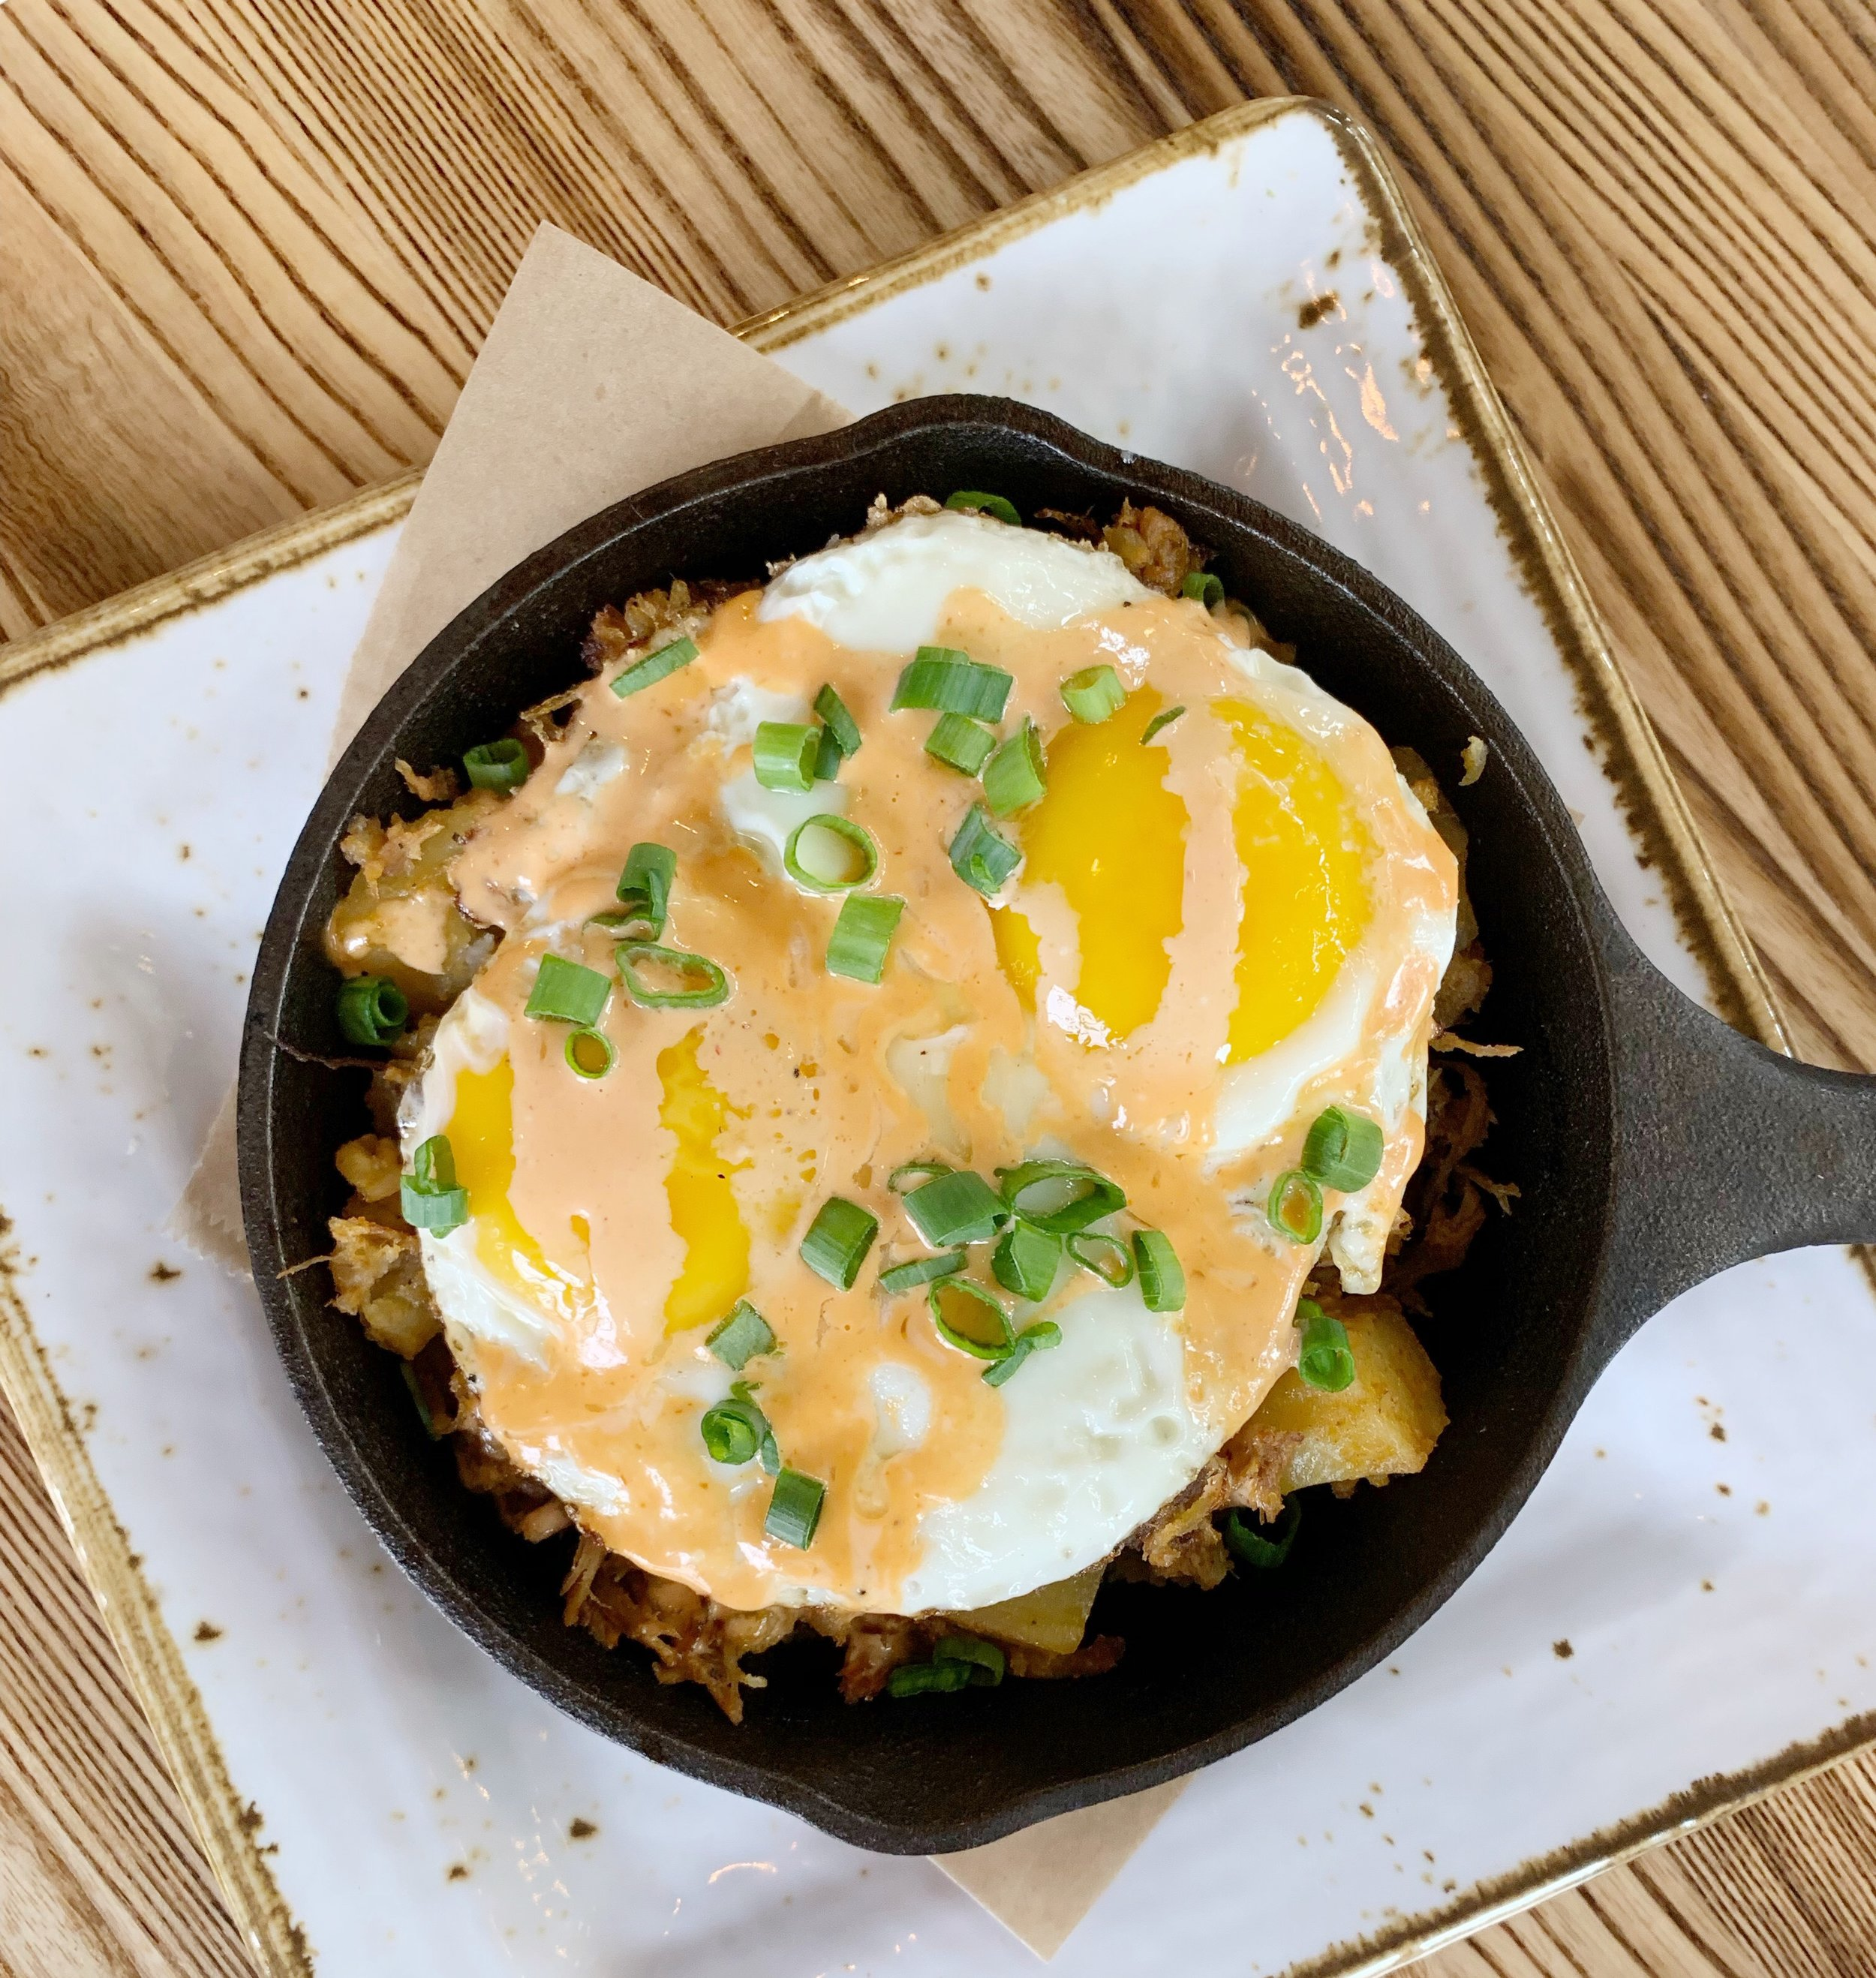 The CUre - Roasted pork hash skillet with baked egg, green onions, and Legion hot sauce aoiliThis is one of the most popular brunch items, probably because hungover people love potatoes. And really, who doesn't? This is a classic brunch dish, and we really liked the aioli.